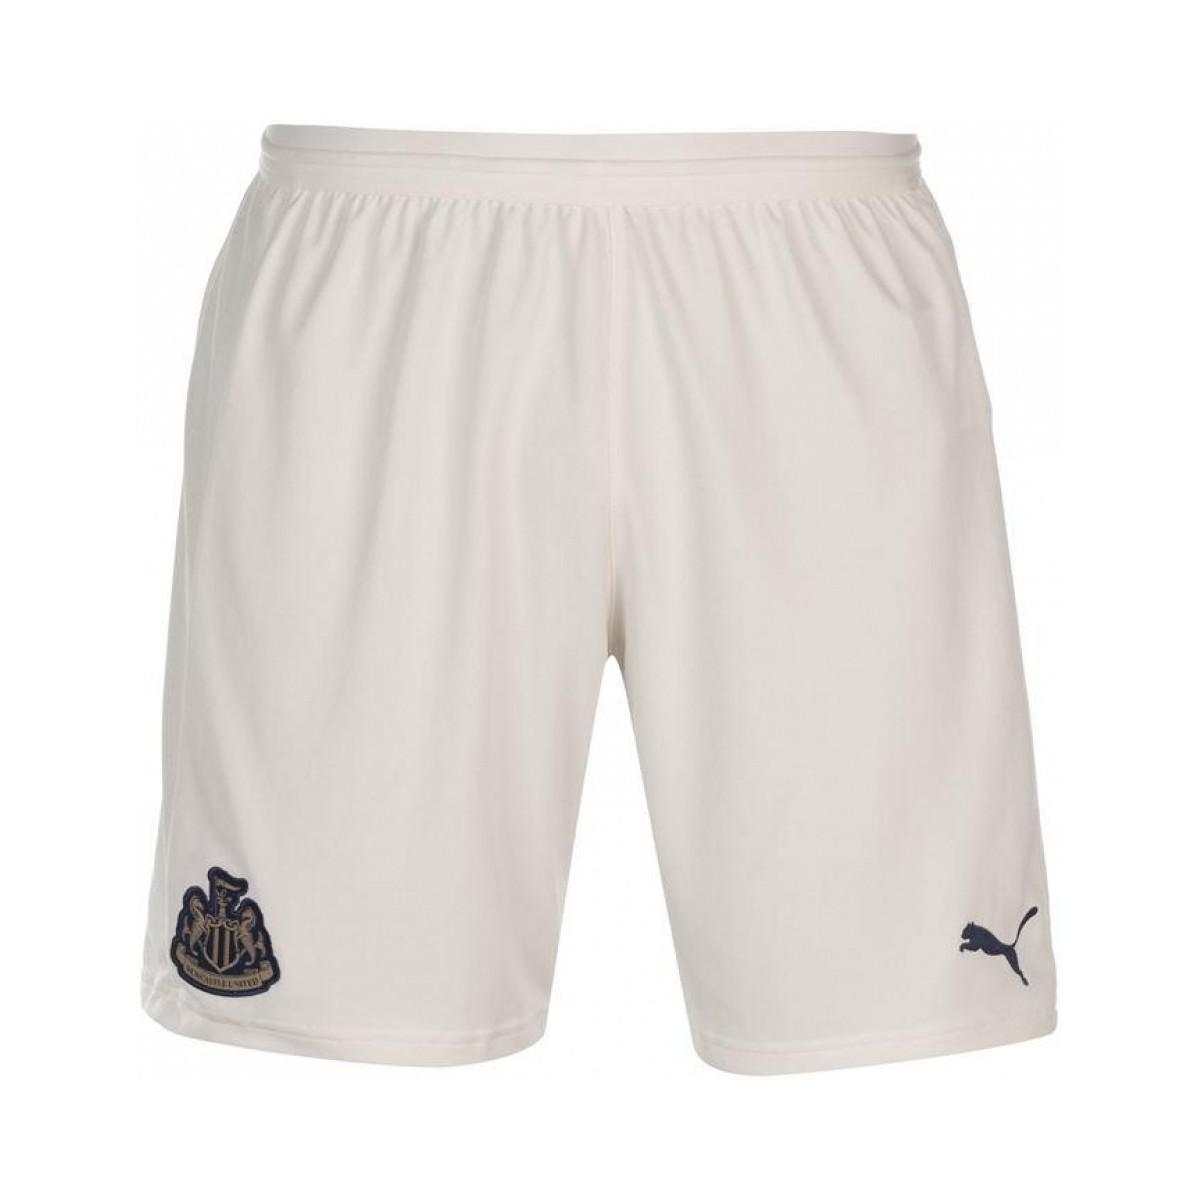 PUMA 2018-2019 Newcastle Third Football Shorts  (Kids ) a482e57b16f04